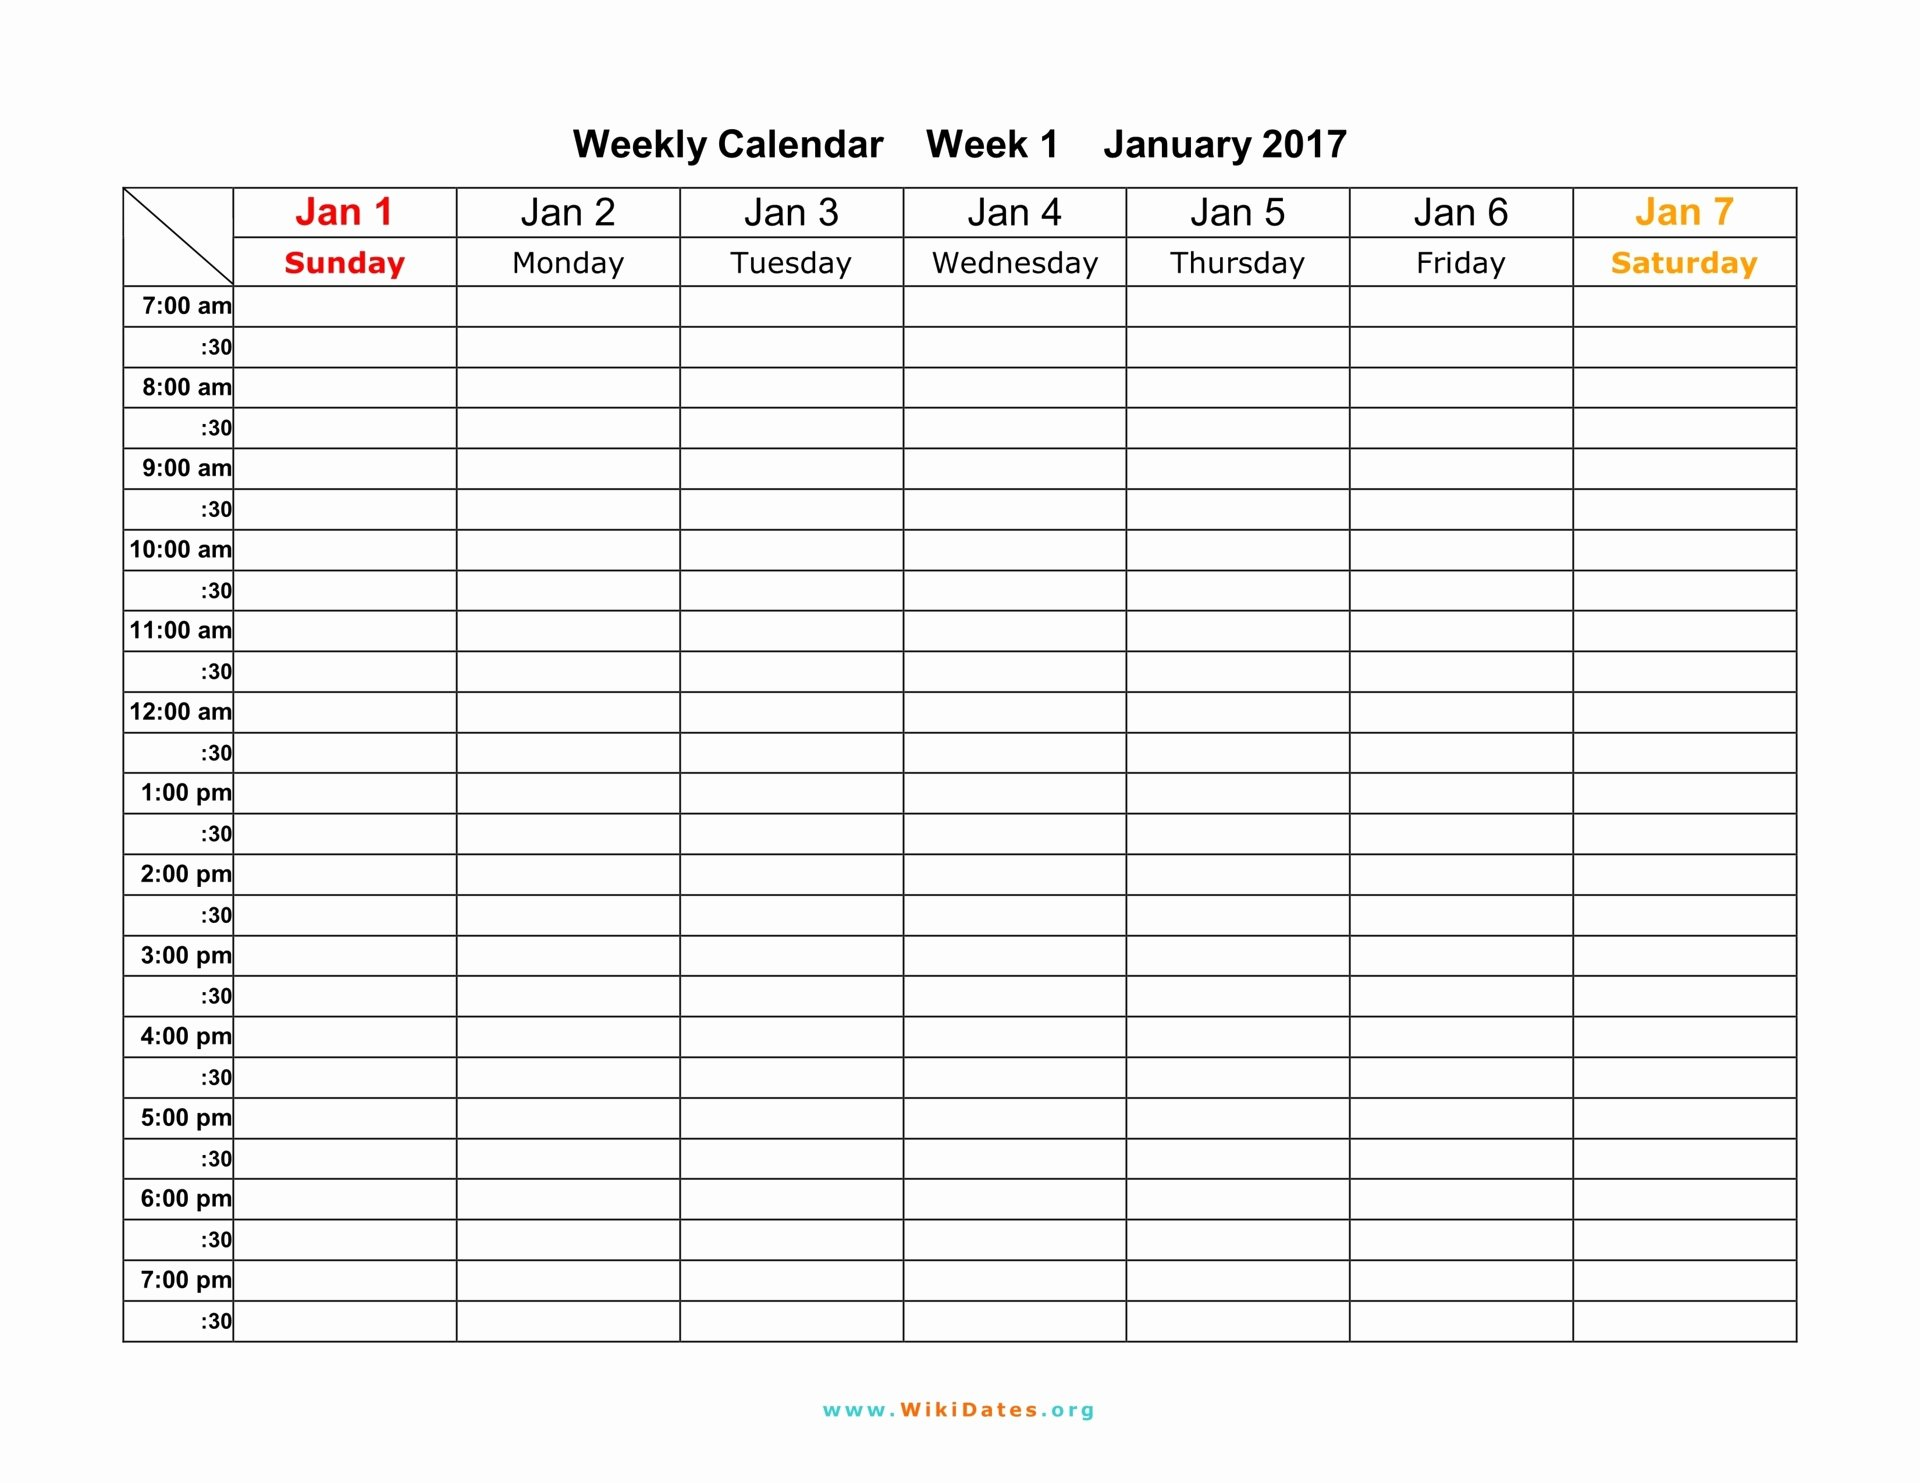 Weekly Calendar Template 2017 Luxury Weekly Calendar Download Weekly Calendar 2017 and 2018